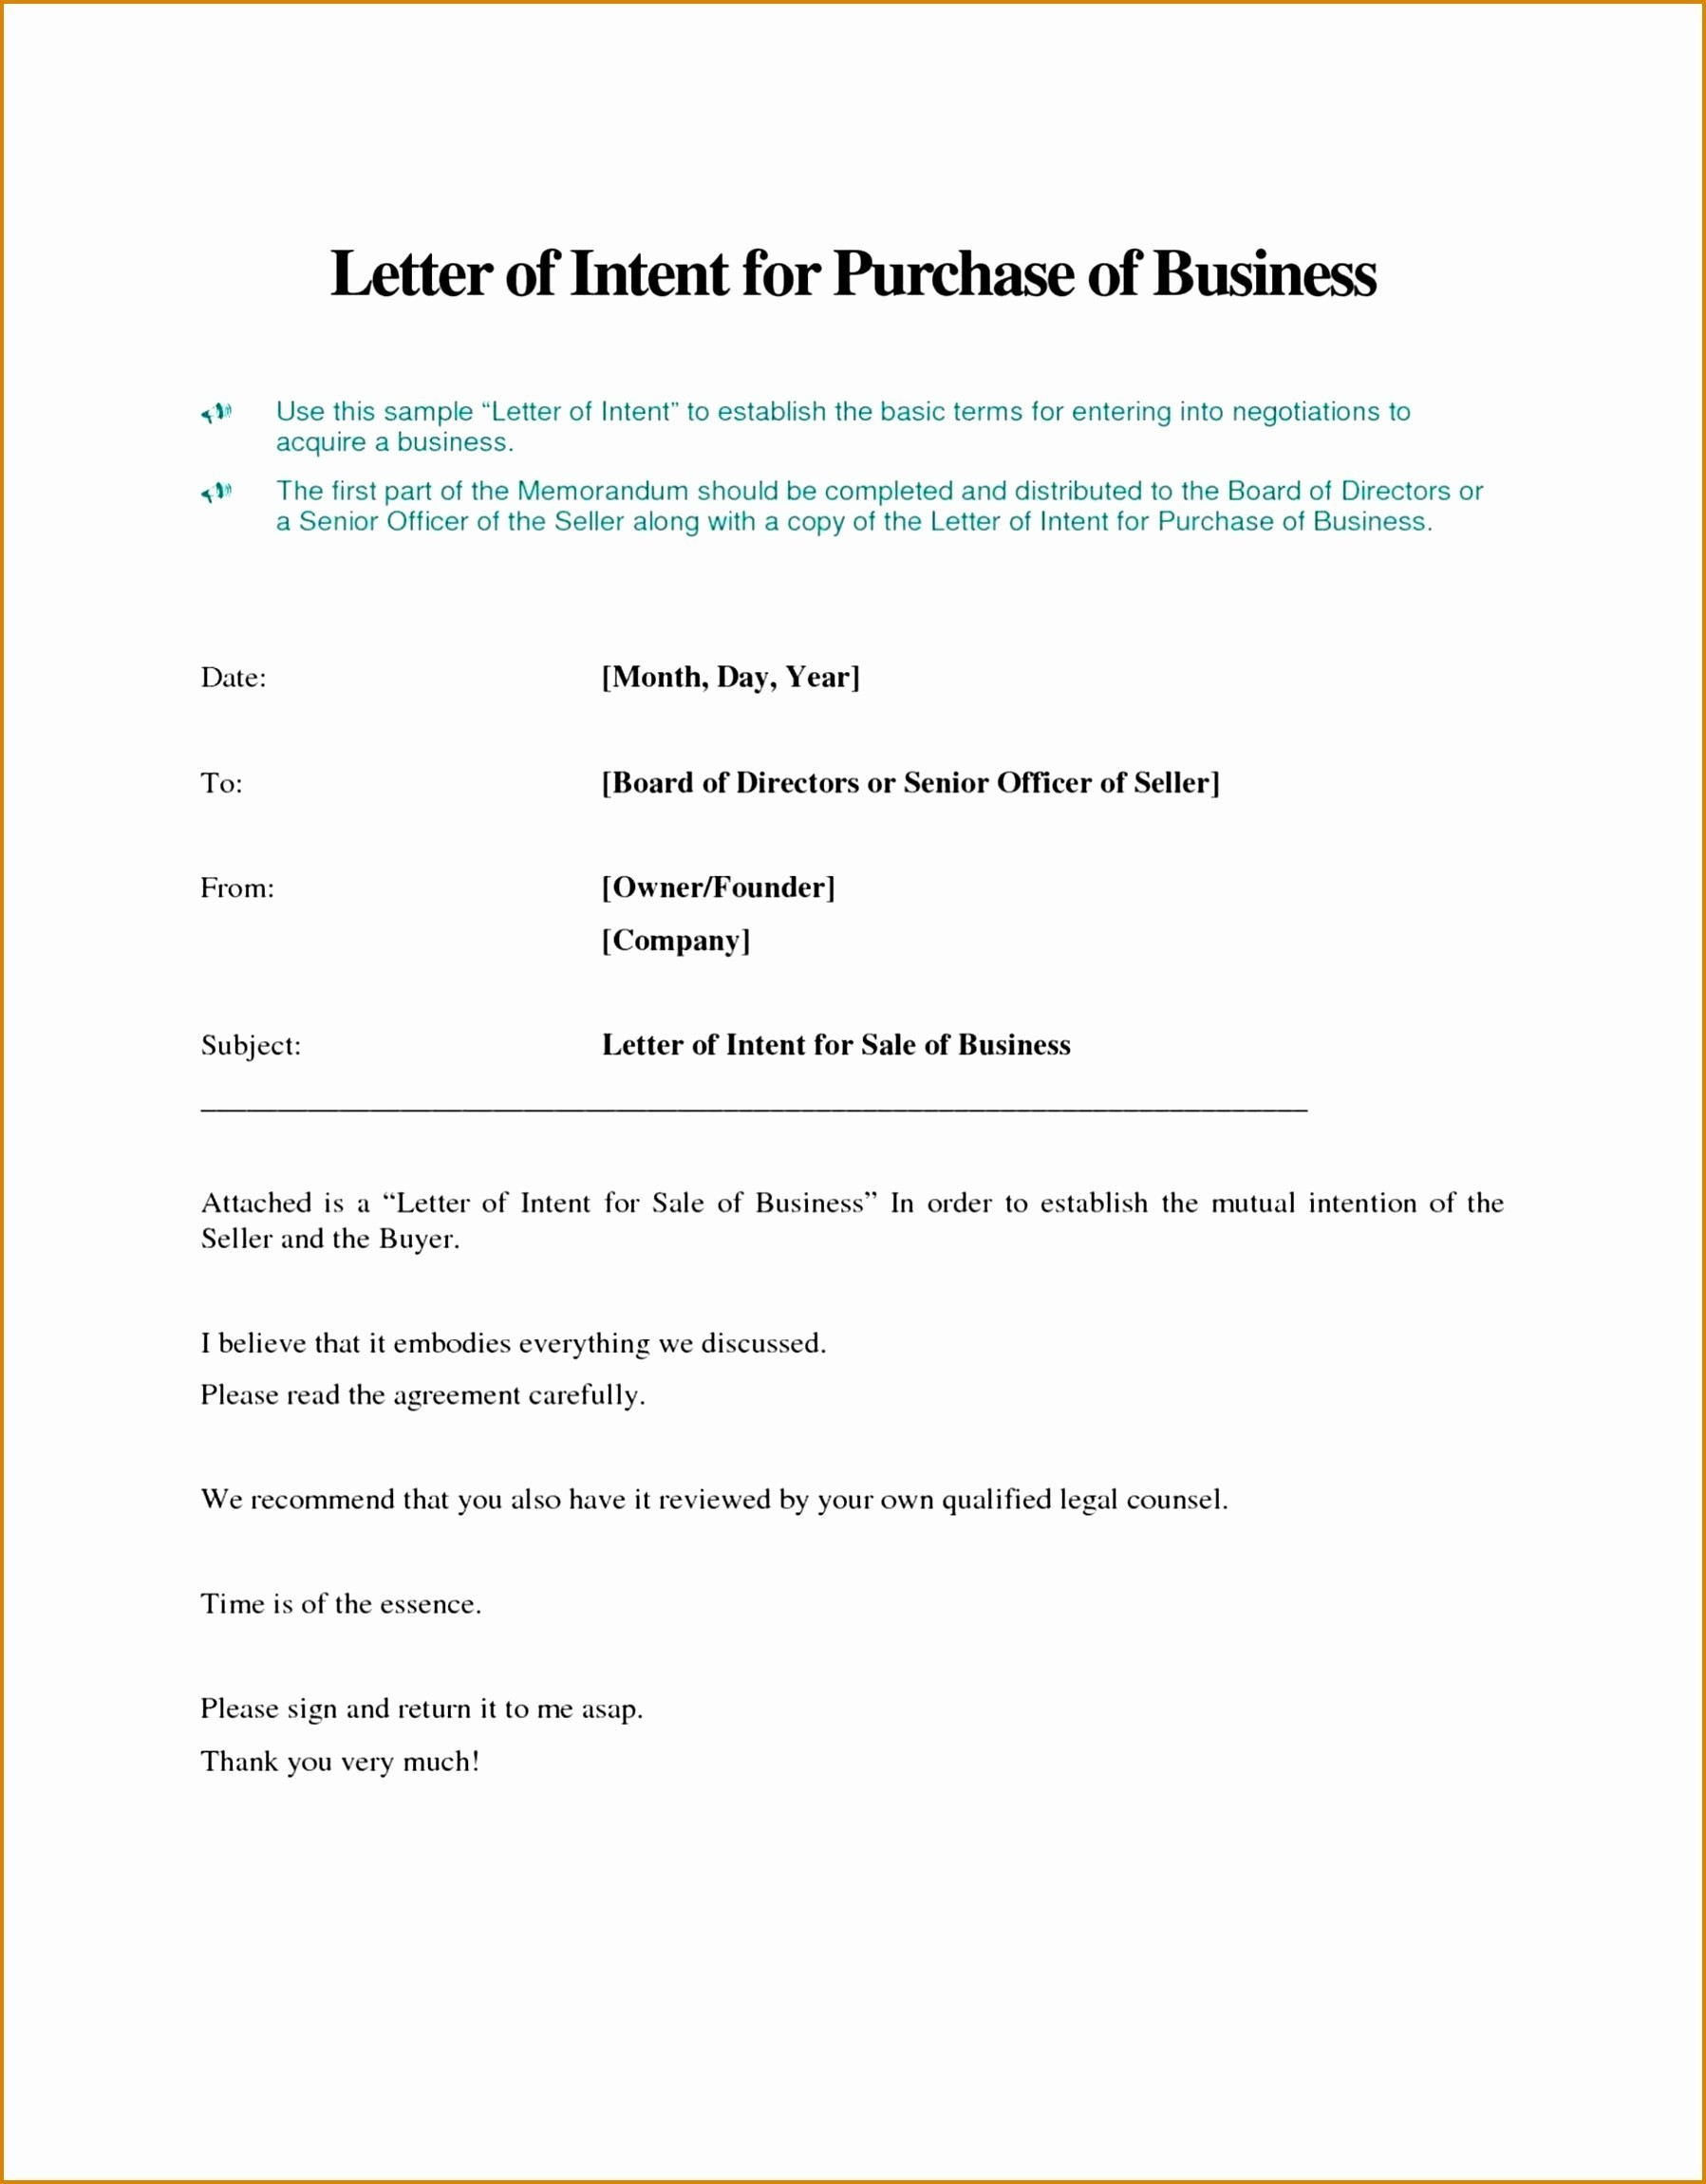 Letter of intent to sell a business template examples letter templates letter of intent to sell a business template letter intent to do business template best fbccfo Images